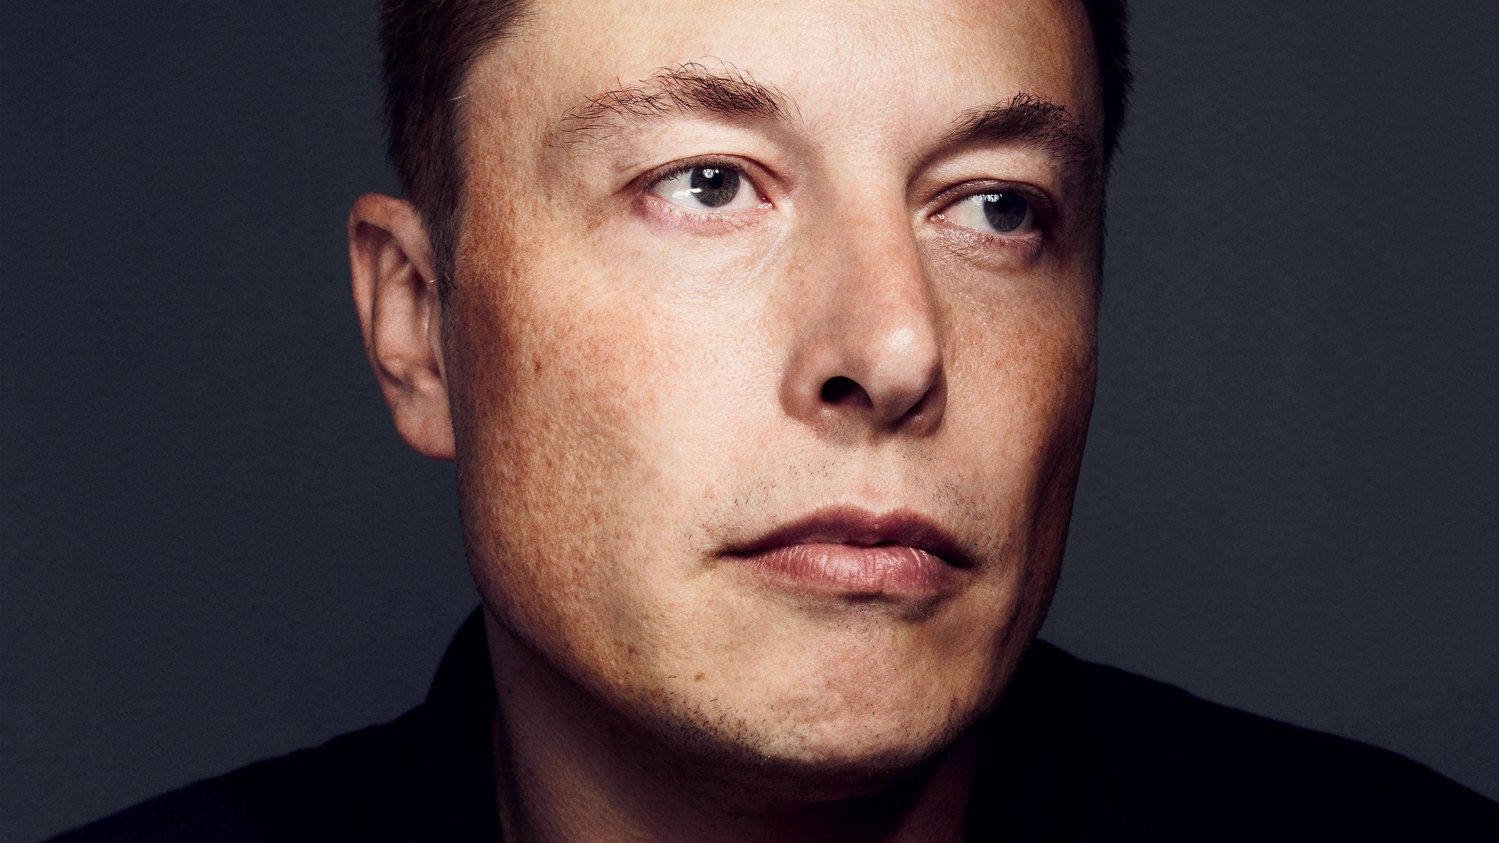 84m Followers 41 Following 227 Posts See Instagram photos and videos from Elon Musk elonmusk